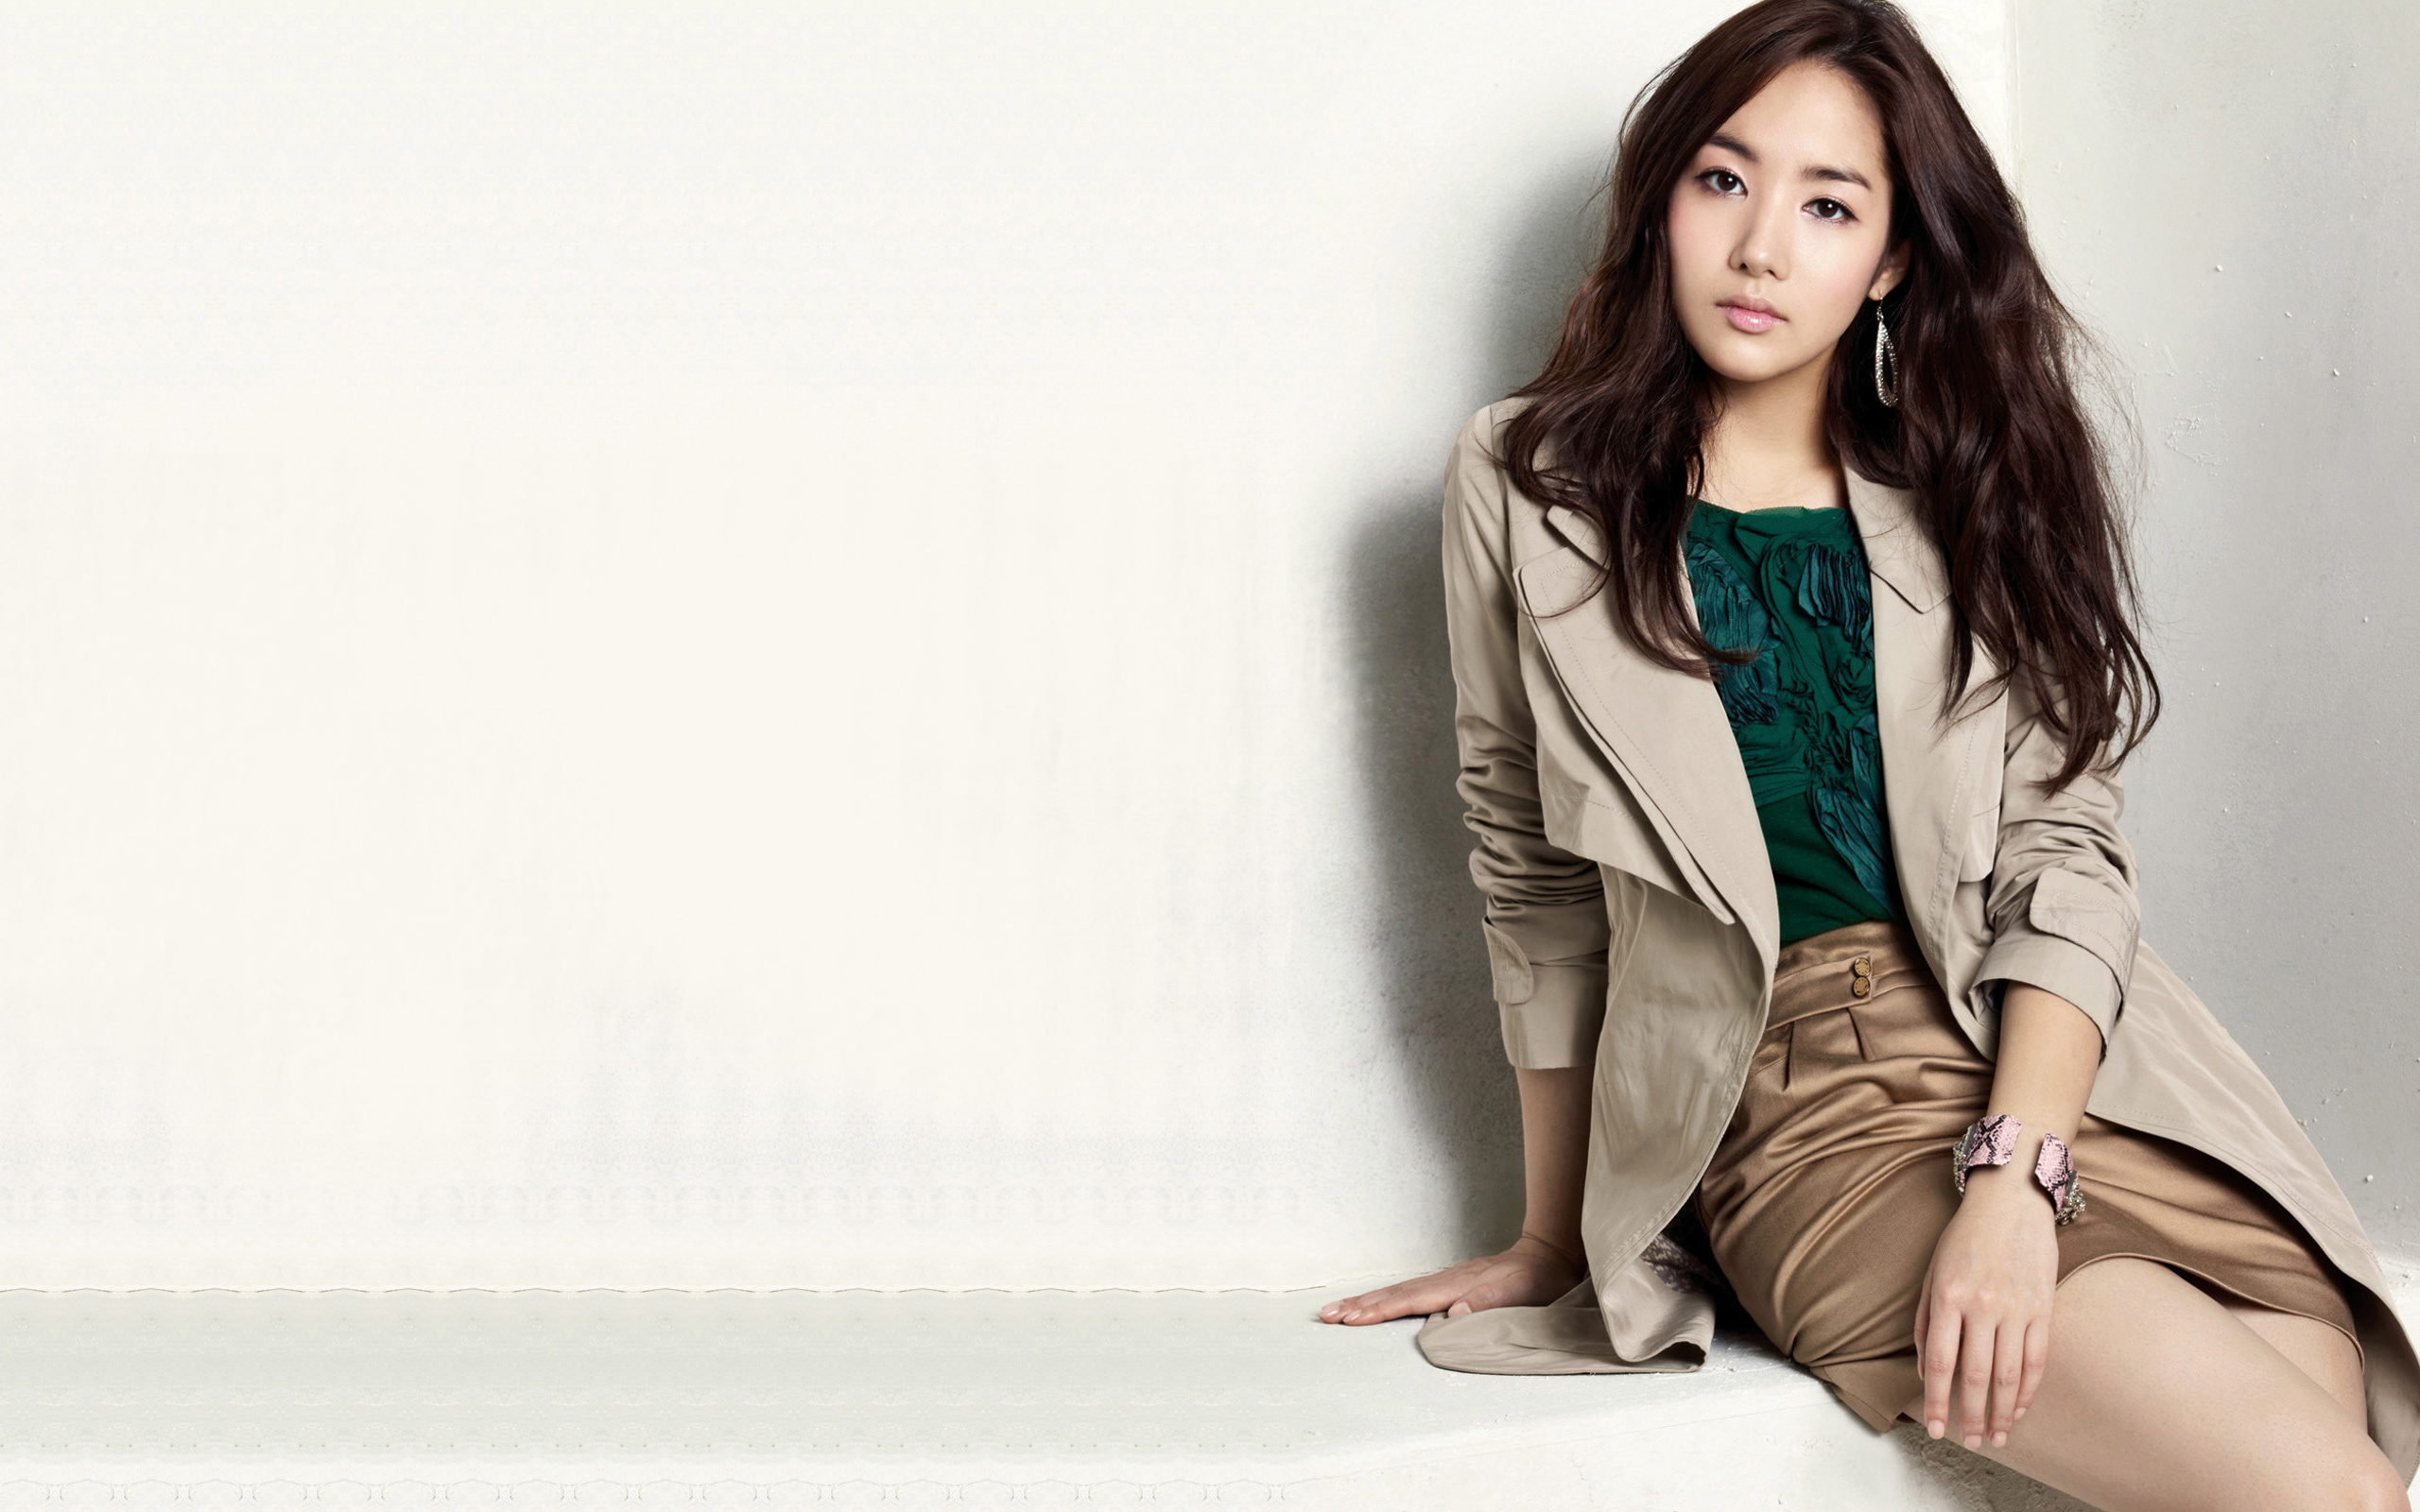 92 ] Park Min Young Wallpapers On WallpaperSafari